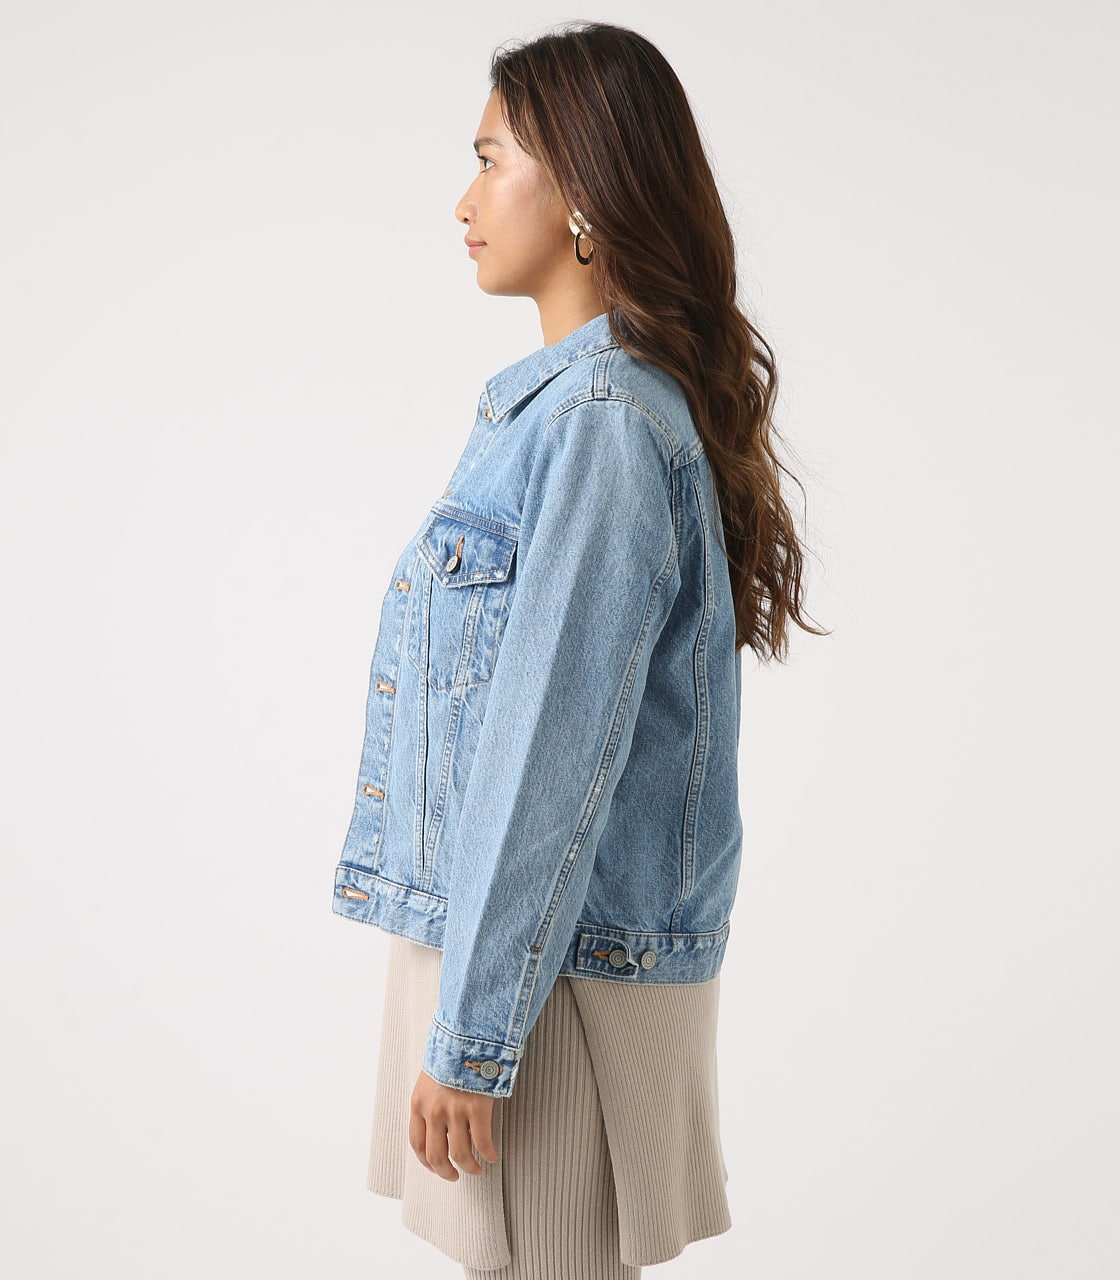 【AZUL BY MOUSSY】DENIM JACKET 詳細画像 L/BLU 6